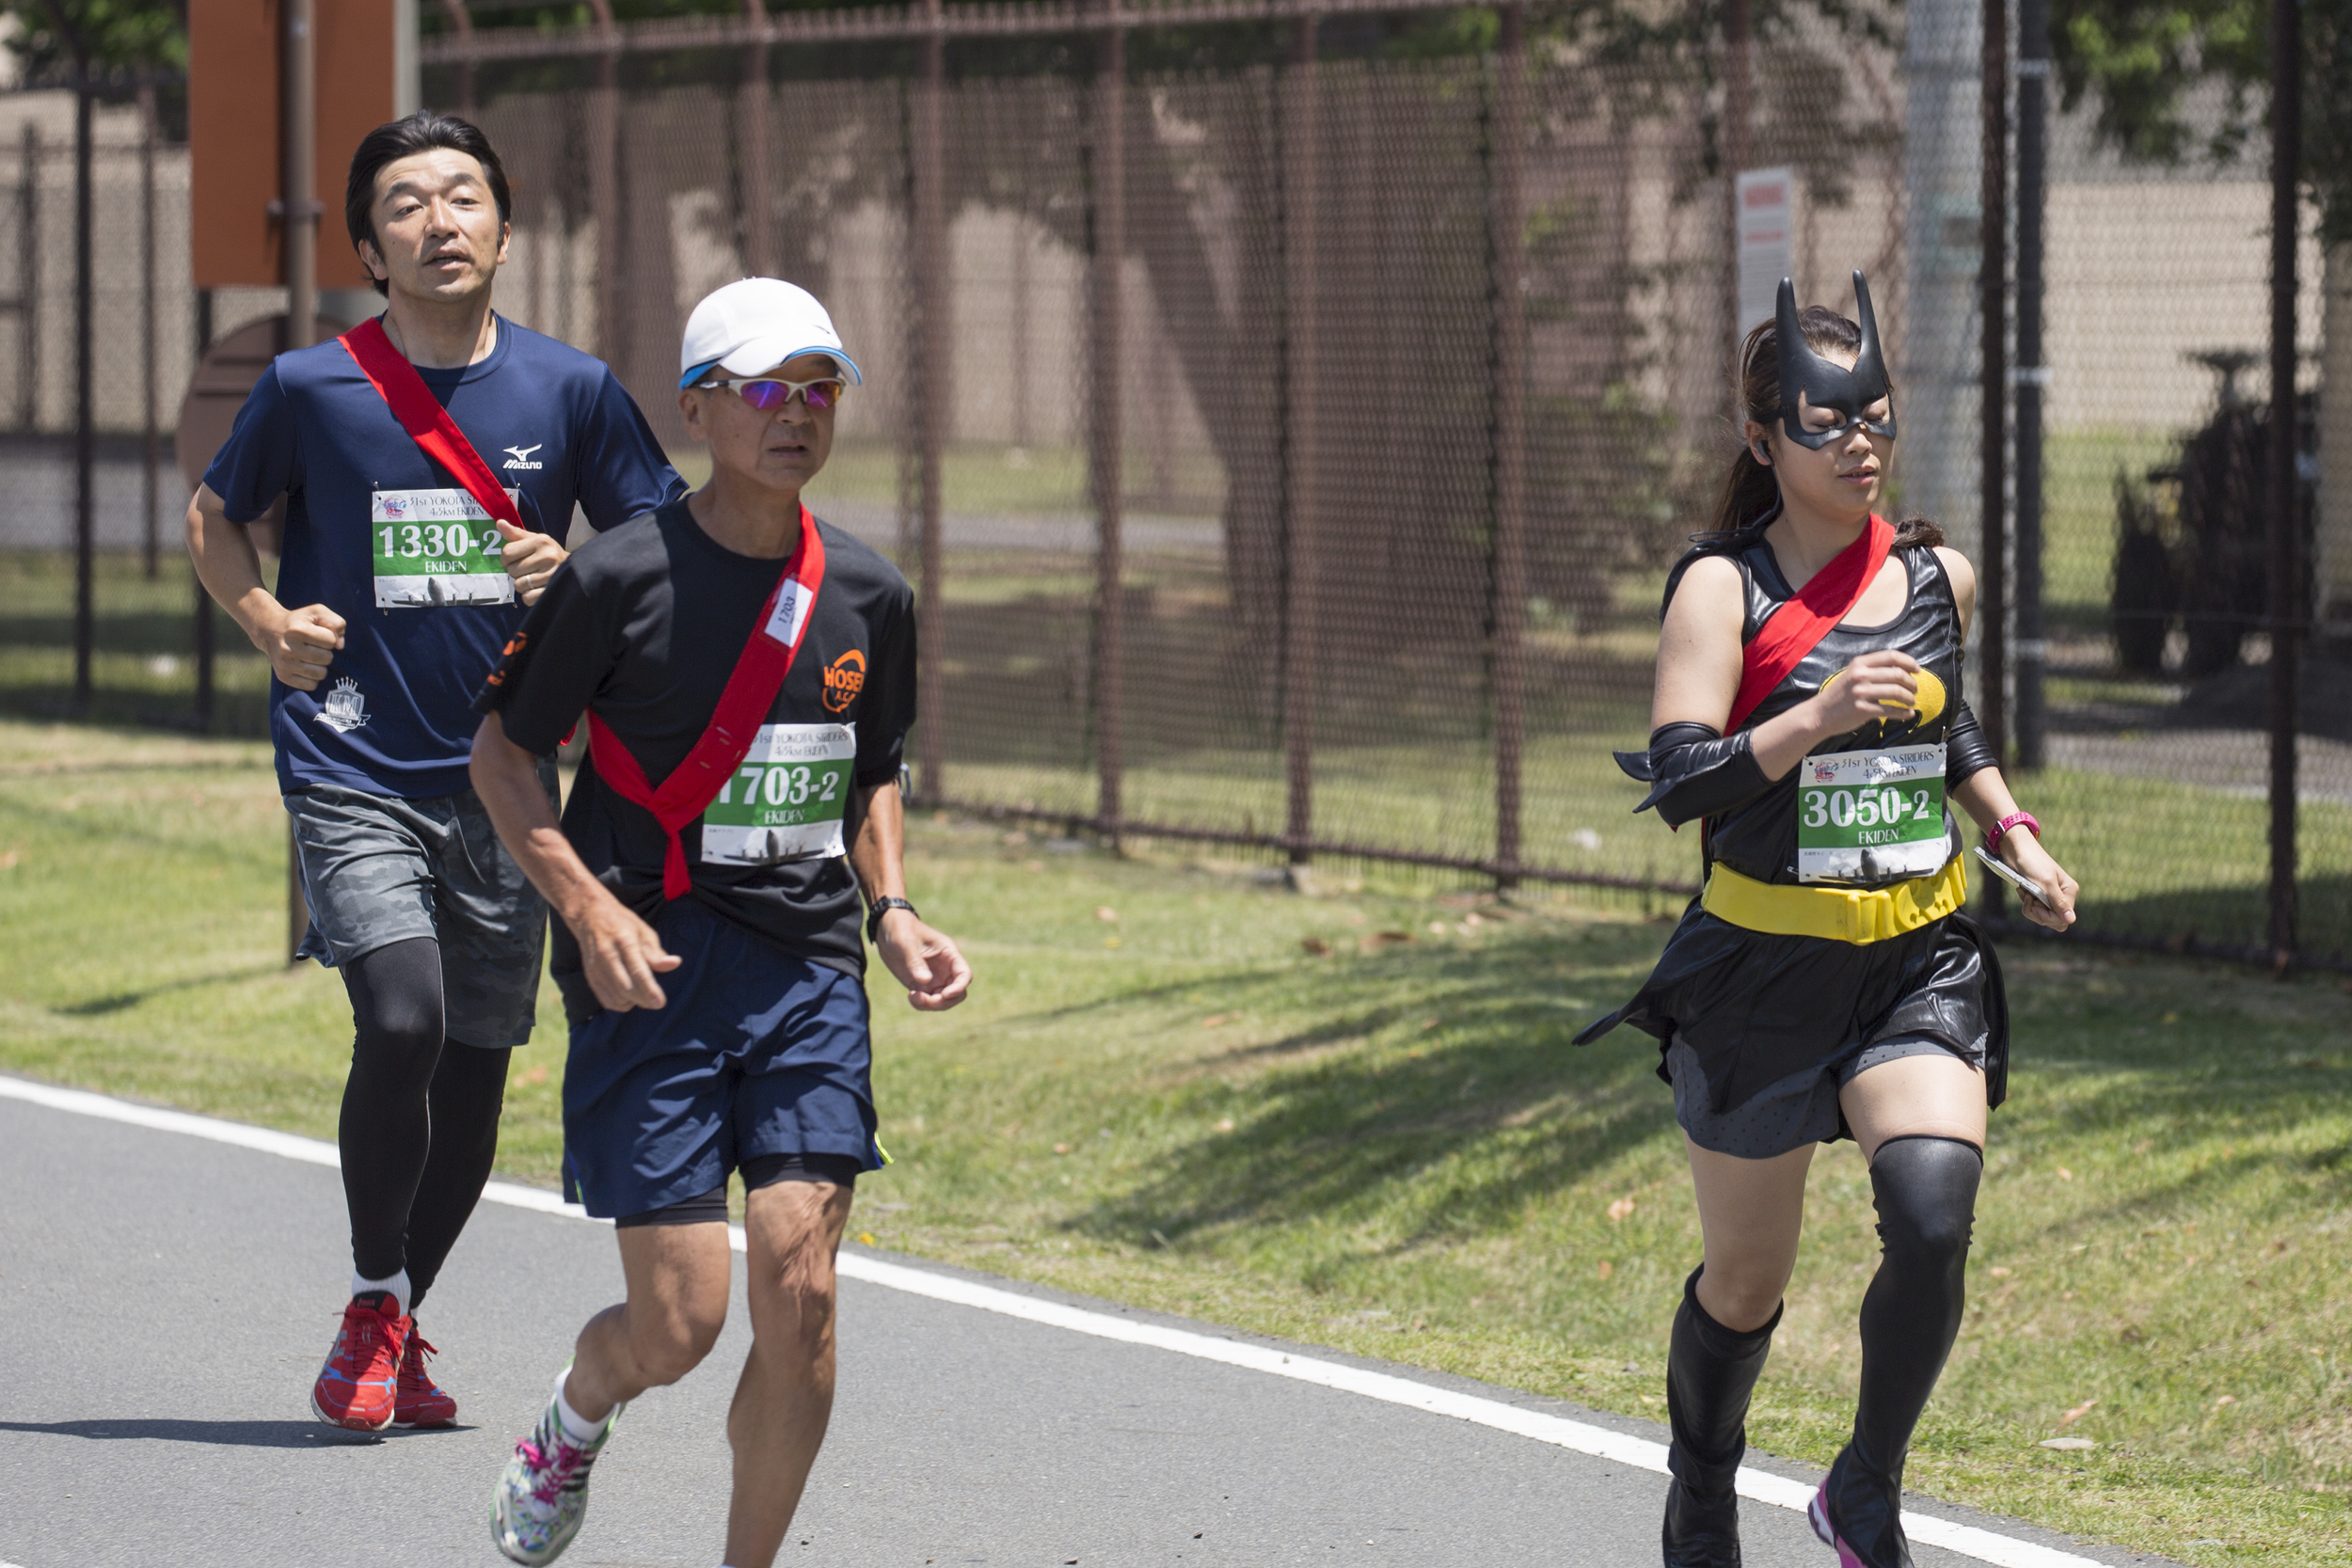 Runners participate in the 31st annual Ekiden Run at Yokota Air Base, Japan, June 7, 2015. The Yokota Striders running club sponsored the annual Ekiden Run consisting of three different races at this event: a 4-person 5k relay, 5k race, and 2k Kid's Run. (U.S. Air Force photo by Osakabe Yasuo/Released)